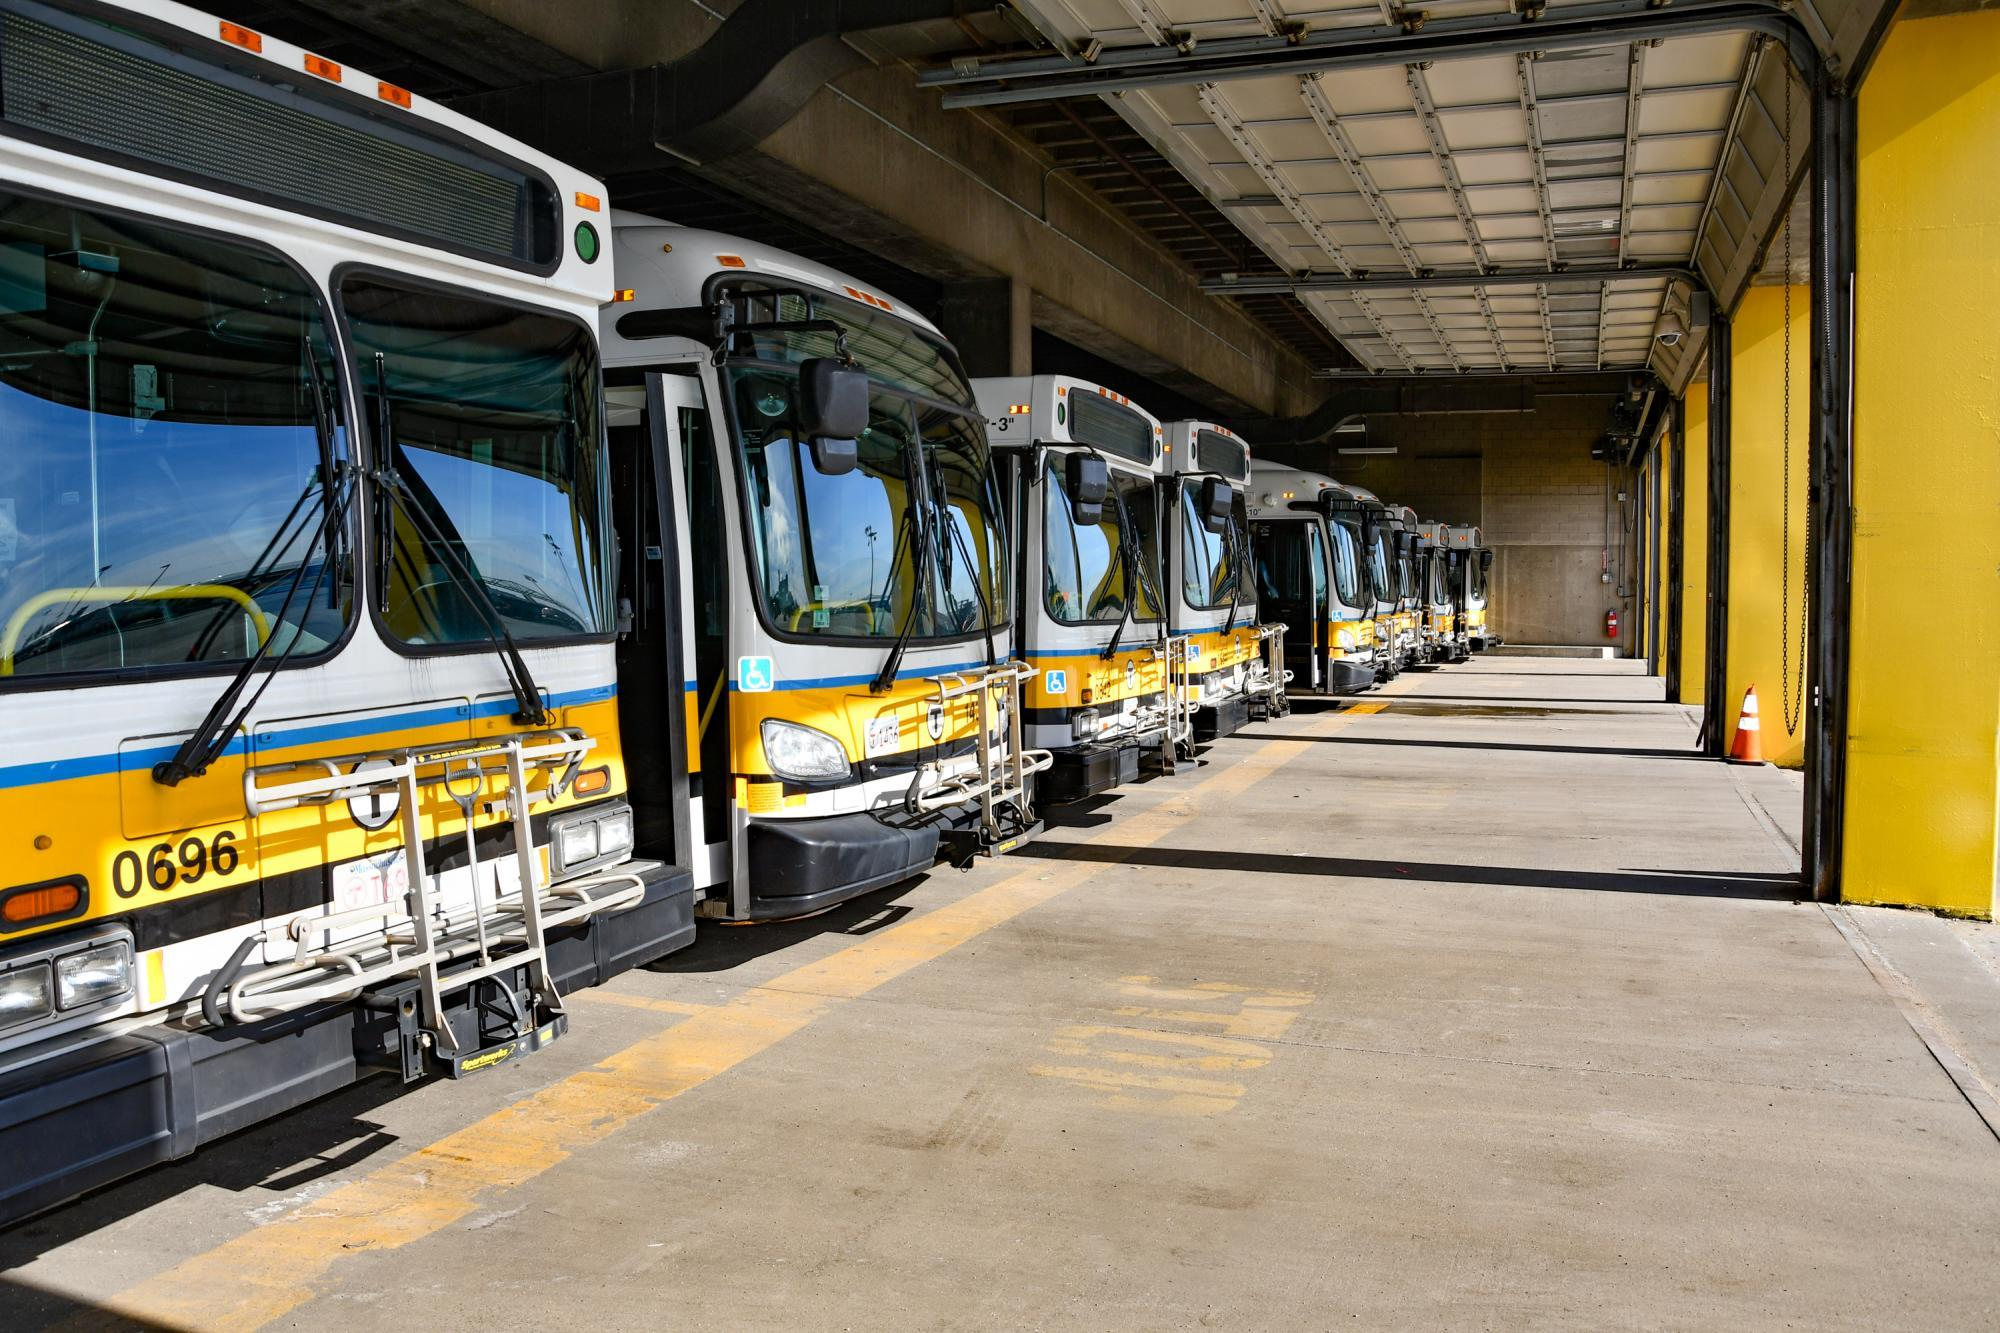 A line of parked buses, with sunlight streaming into the garage